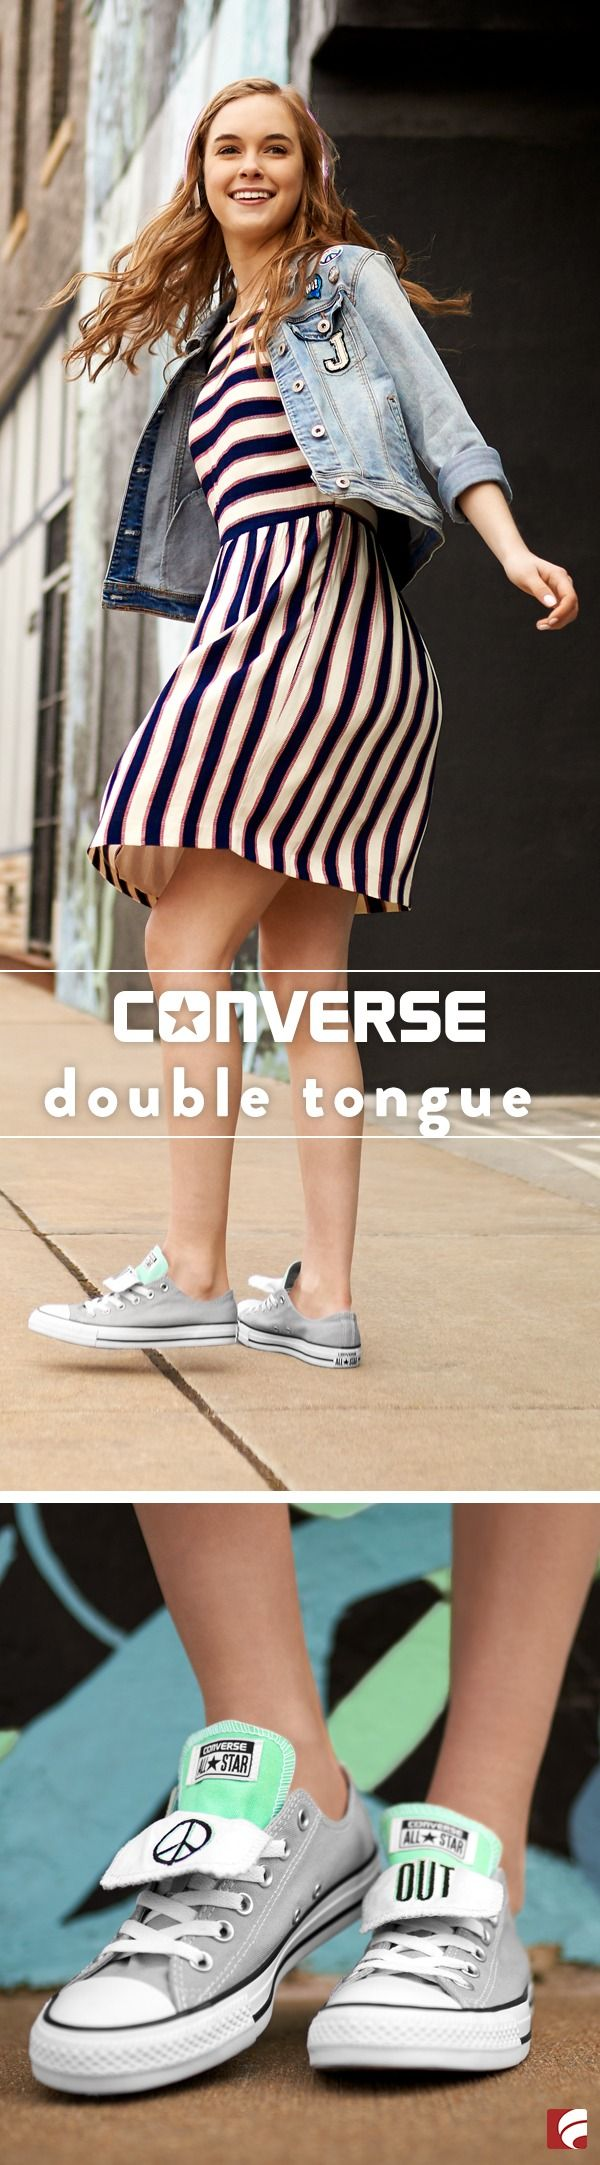 Let's be honest…you've never been that good at blending in. And we love it. Stand out, be bold and #stepforward every day in the Converse Double Tongue.